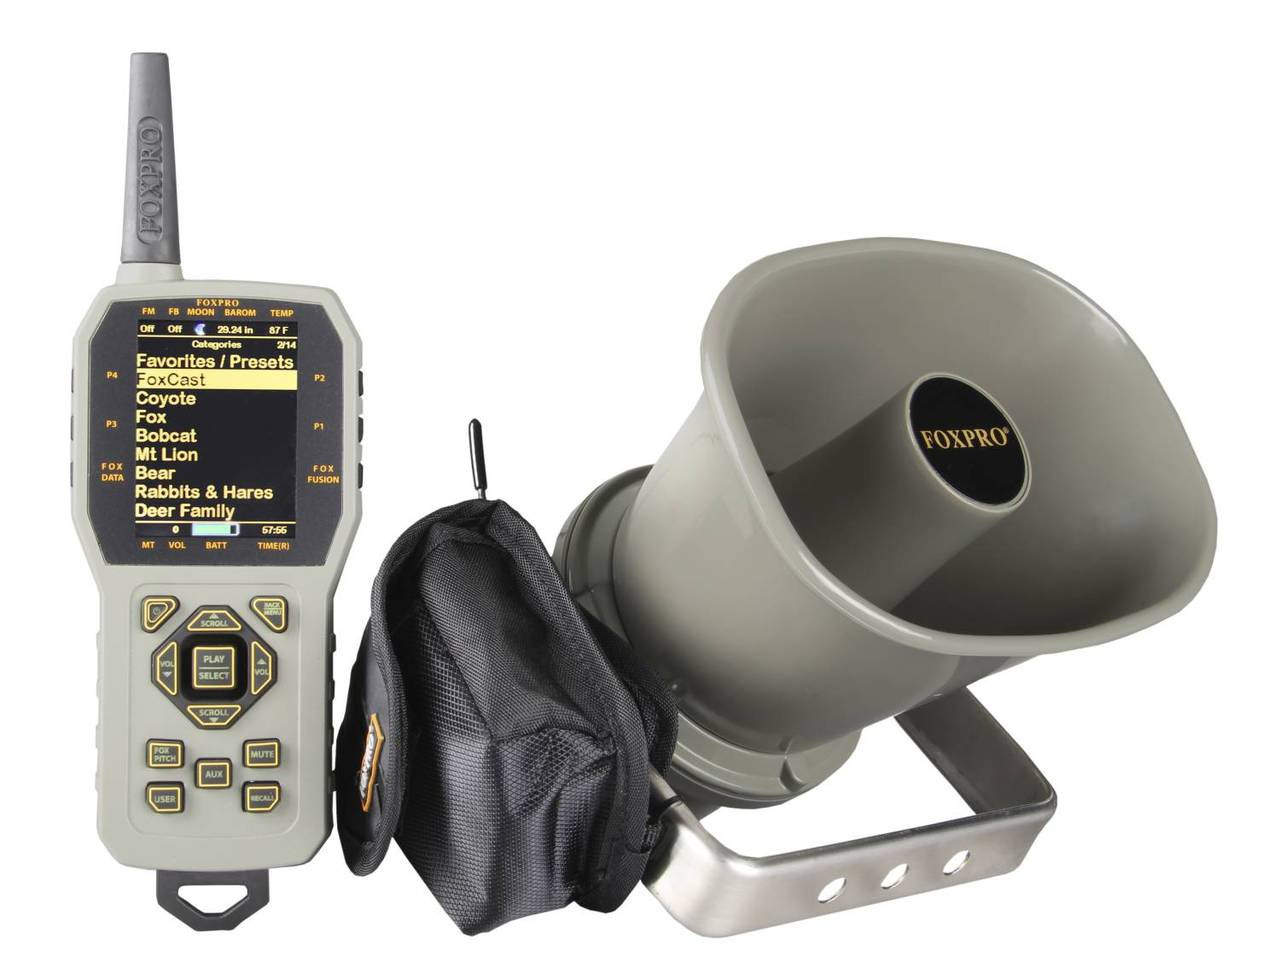 FOXPRO CS24C digital game call with 100 custom sounds and tx1000 remote control